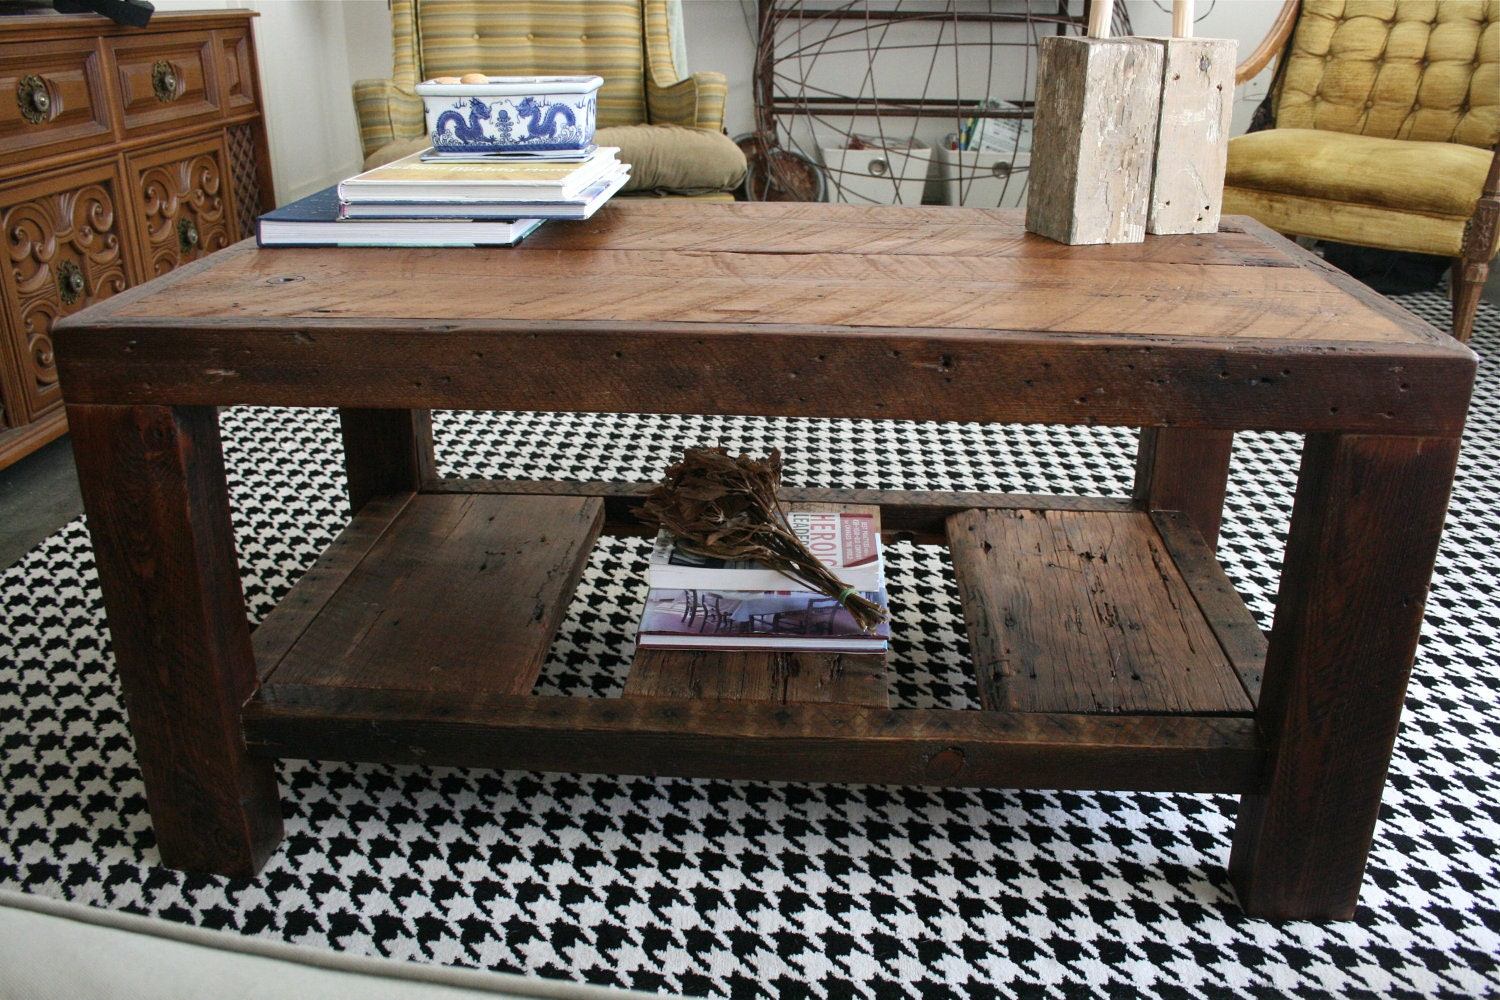 The Rustic Coffee Table Made From New Orleans Barge Board